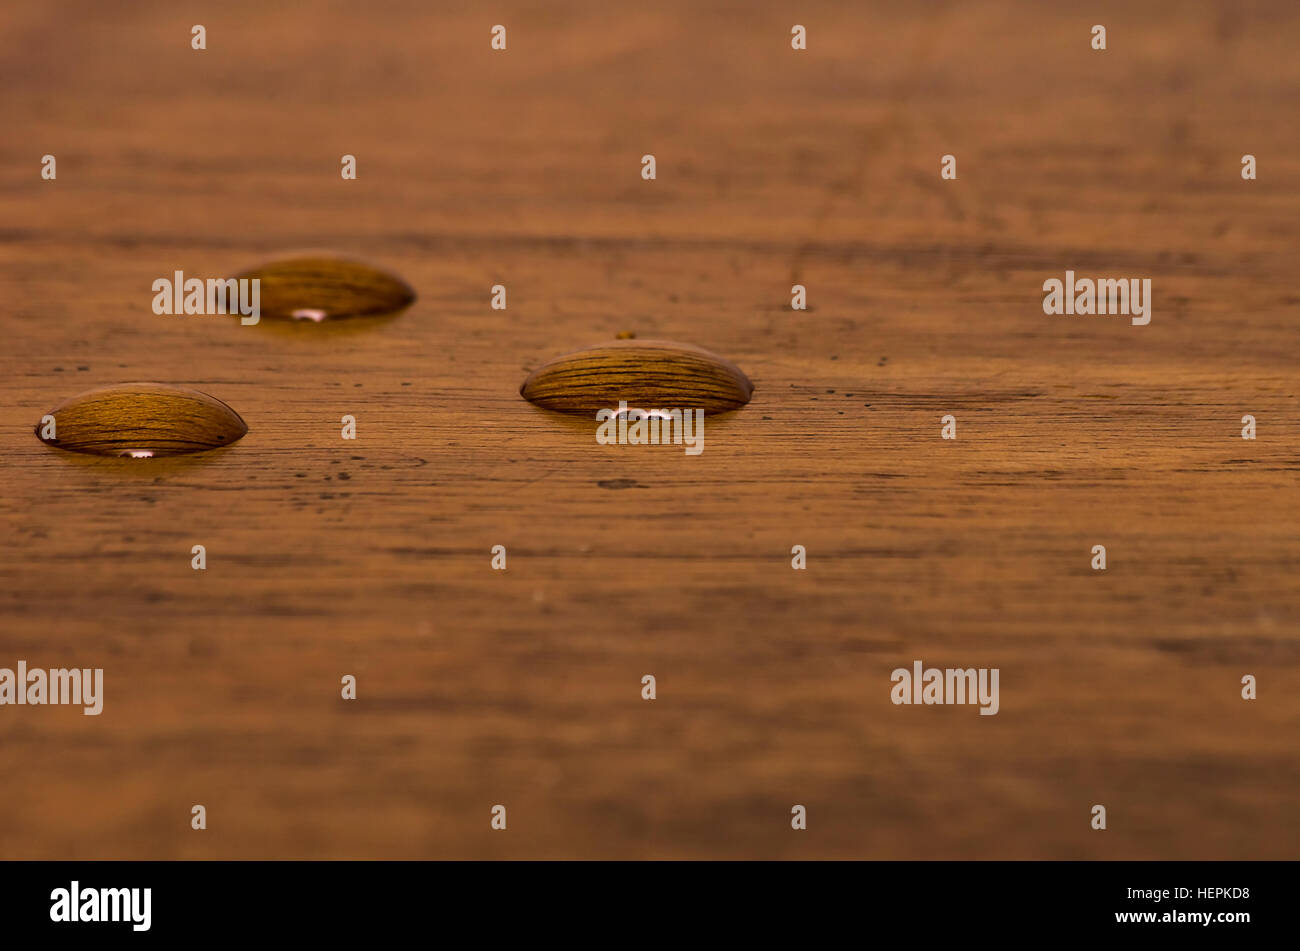 Three water beads on finished walnut wood. - Stock Image